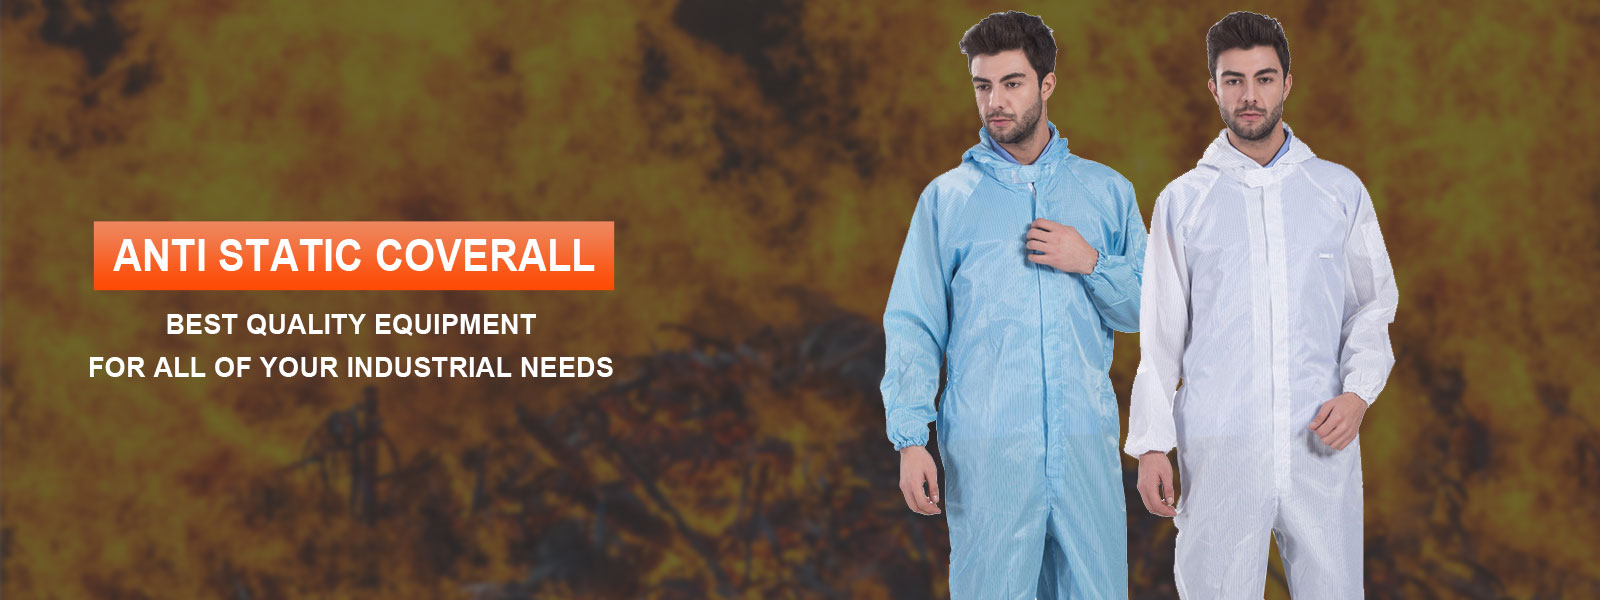 Anti Static Coverall Manufacturers in Bangladesh